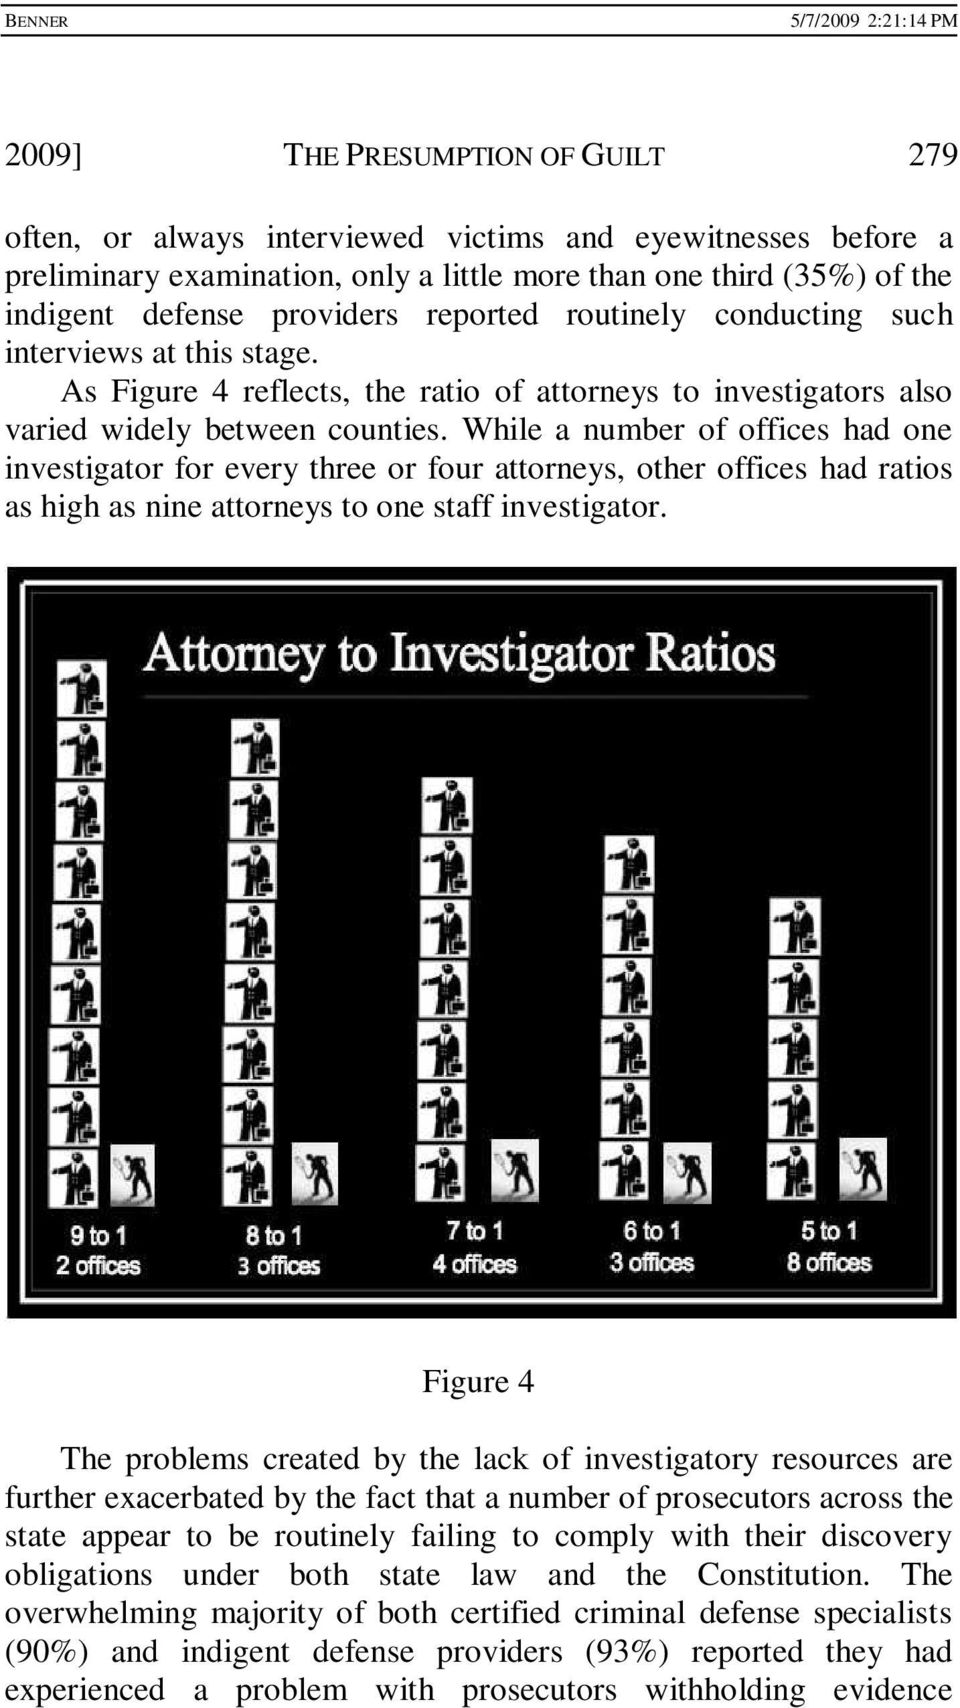 While a number of offices had one investigator for every three or four attorneys, other offices had ratios as high as nine attorneys to one staff investigator.